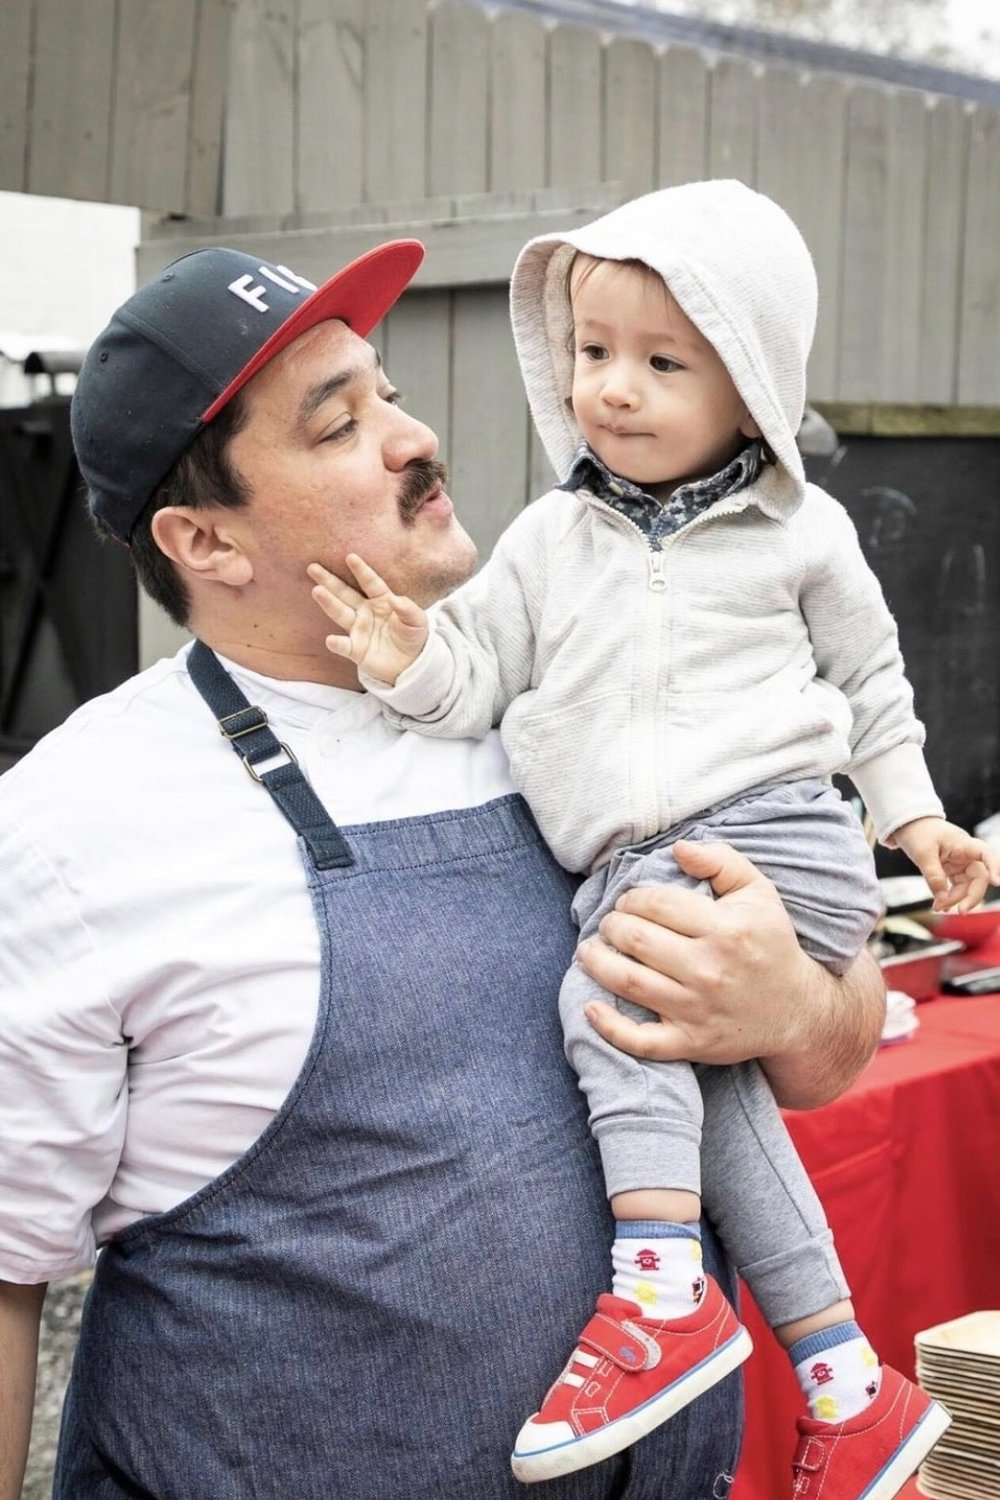 A. K. lives with Jason Stanhope, chef at FIG, and their son Leo. [Photo by John Boncek]